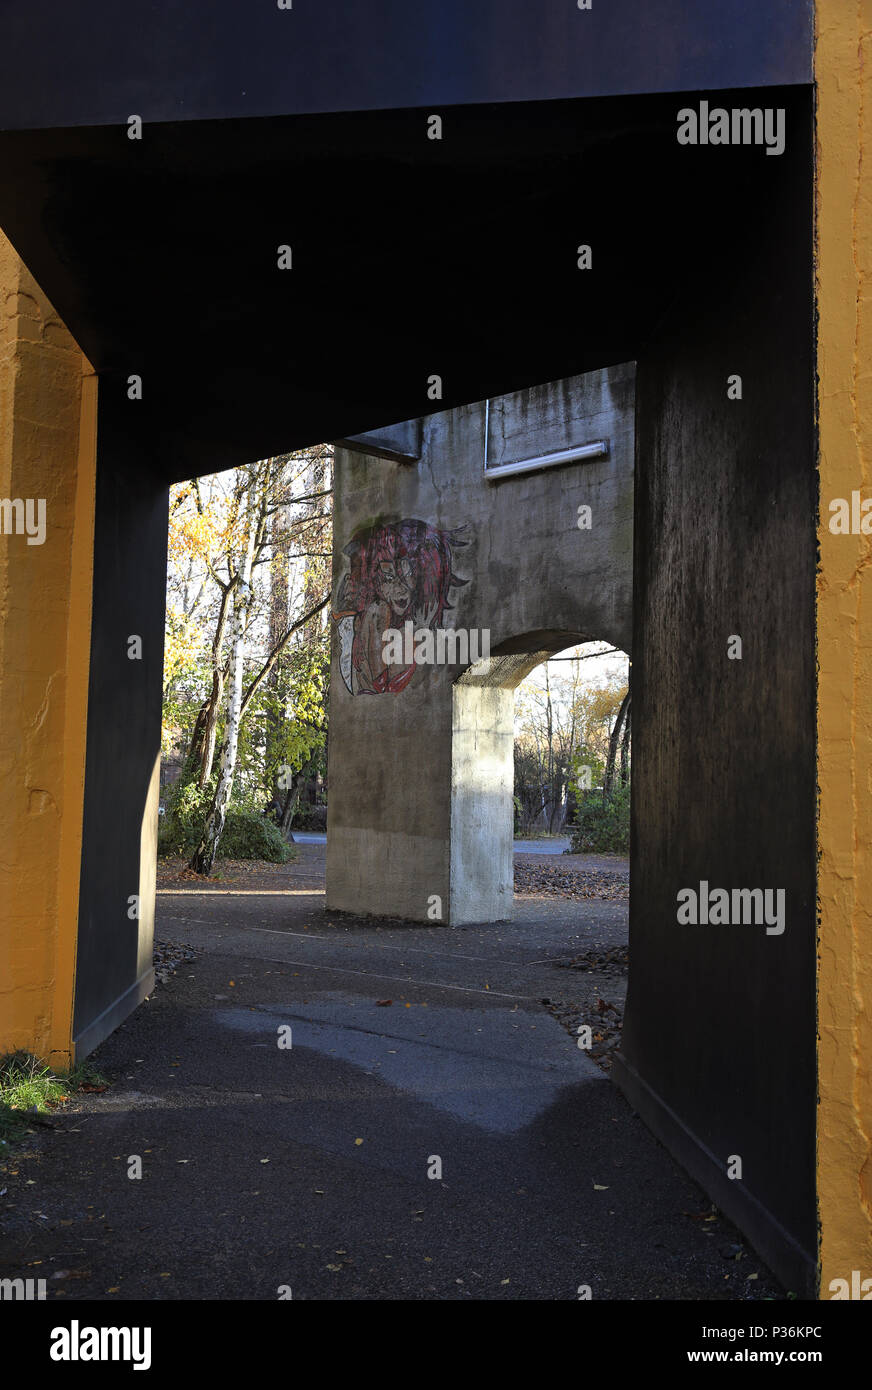 Berlin, Germany, masonry is sprinkled with graffiti - Stock Image